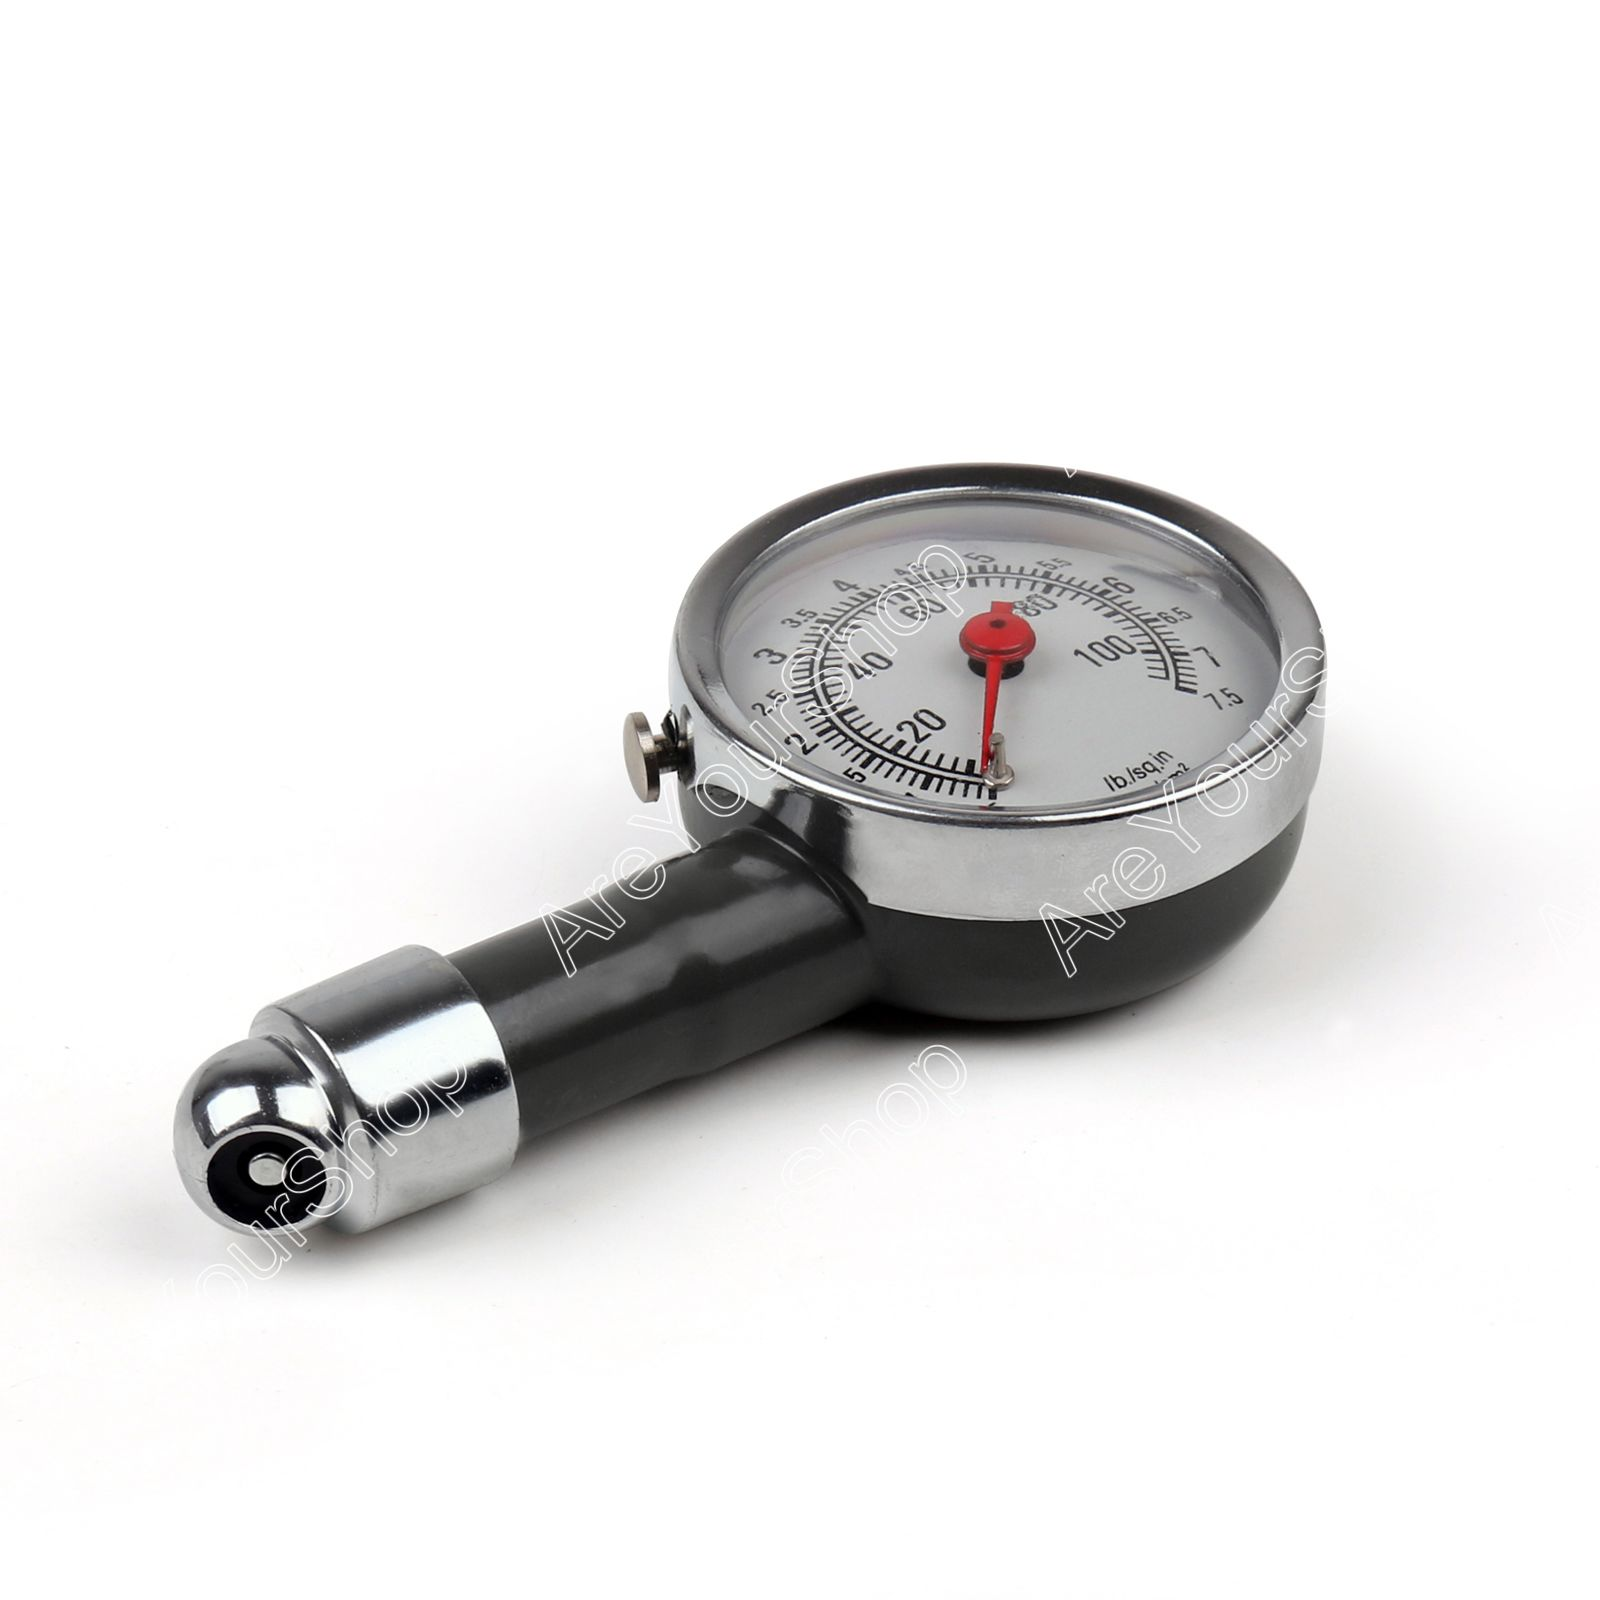 Interior Car Accessories Tire Gauge